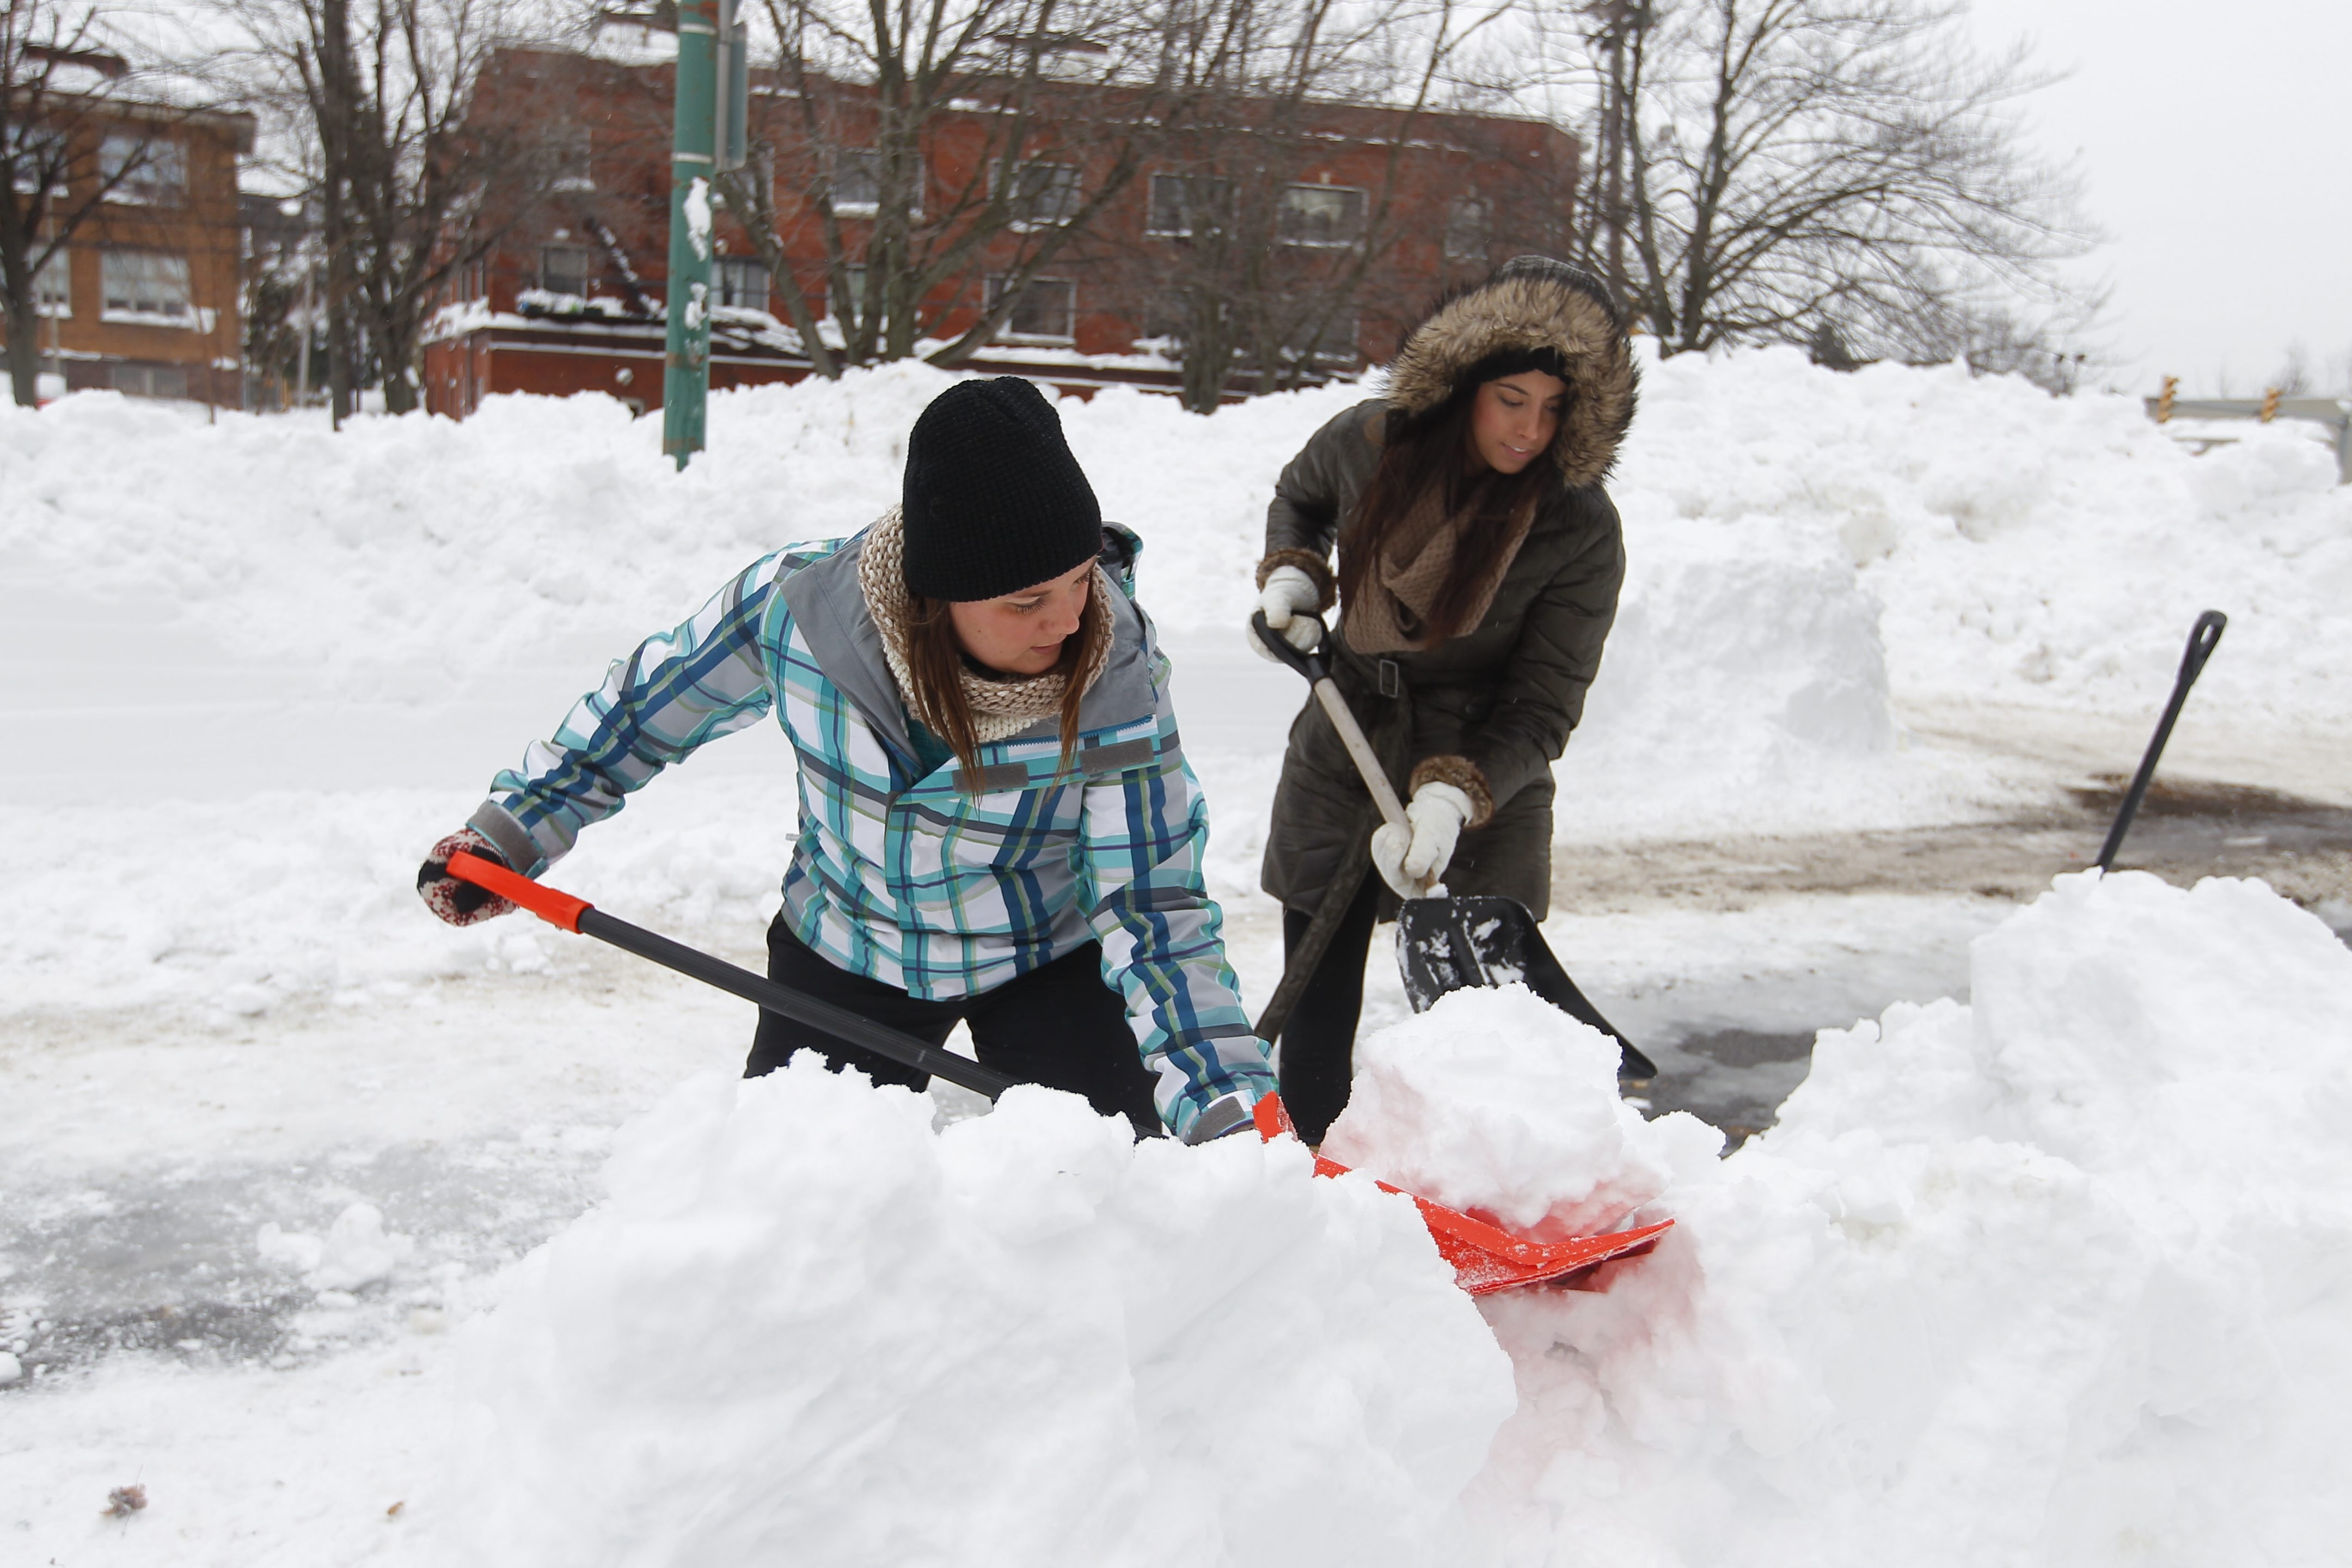 Volunteer shovel brigade members Rachael Pellinger, left, and Megan Spiegelhoff  both of North Buffalo shovel snow  from a base of a driveway on Mineral Springs road  in Buffalo, N.Y. , on Saturday  November  22, 2014.This day 5 of Lake effect storm that barreled into WNY .(John Hickey/Buffalo News)